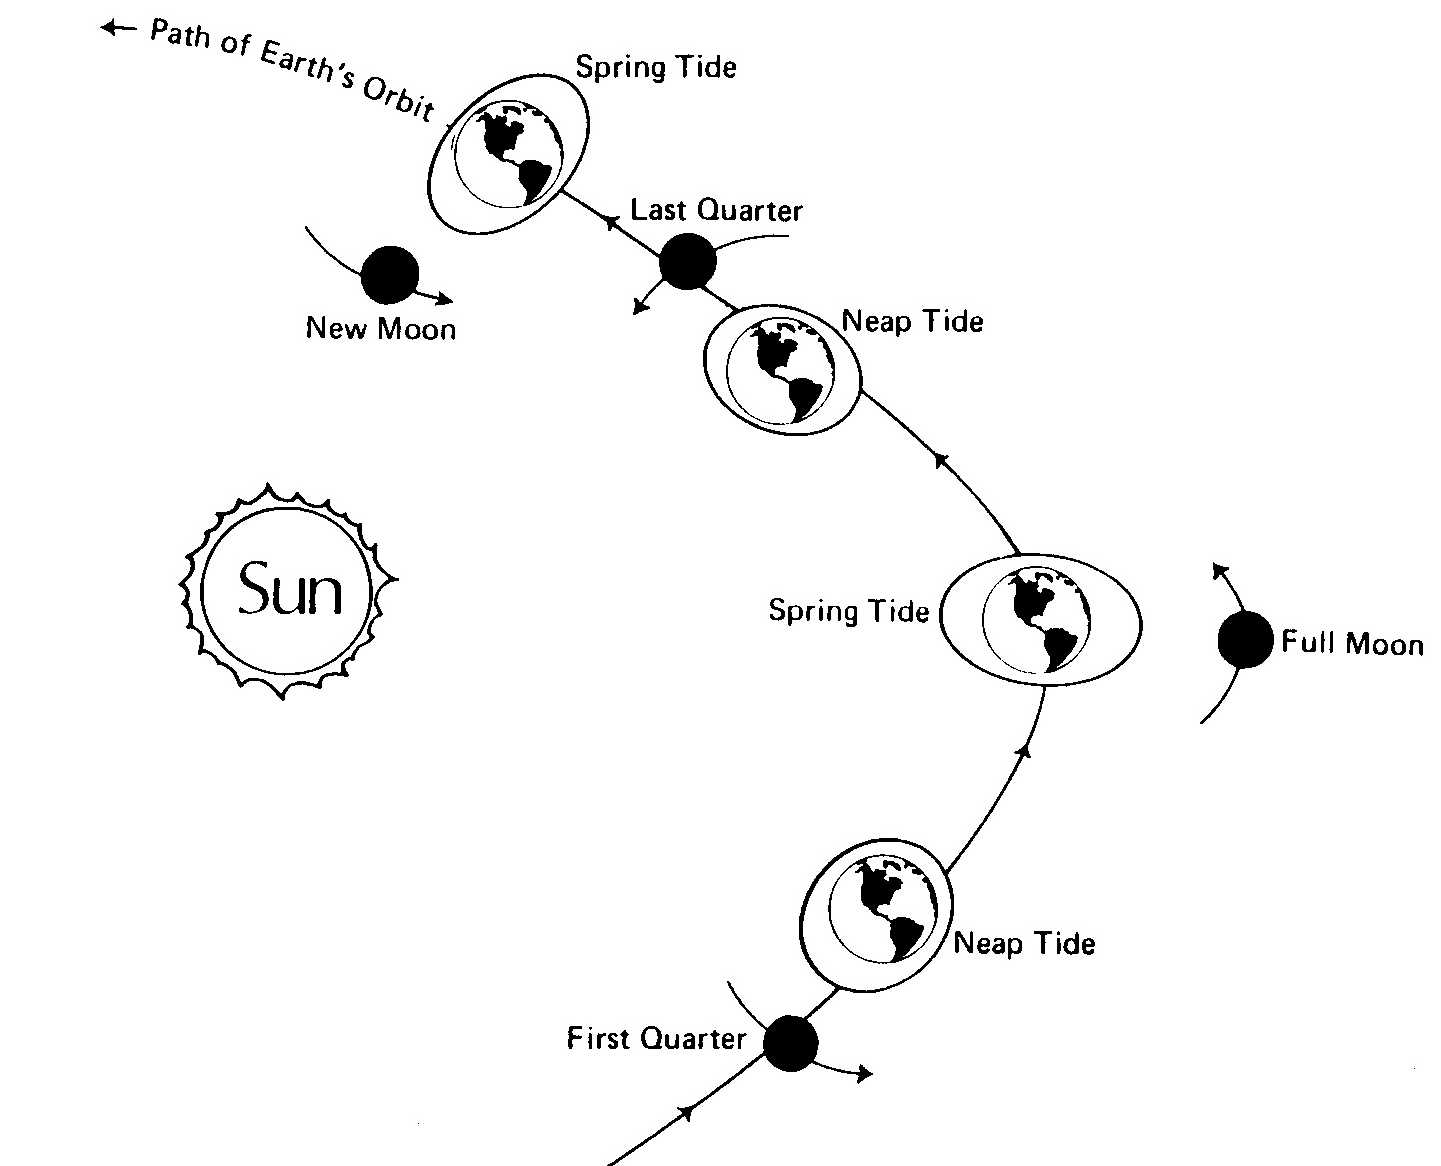 Relationship of the moon's orbit to the tides